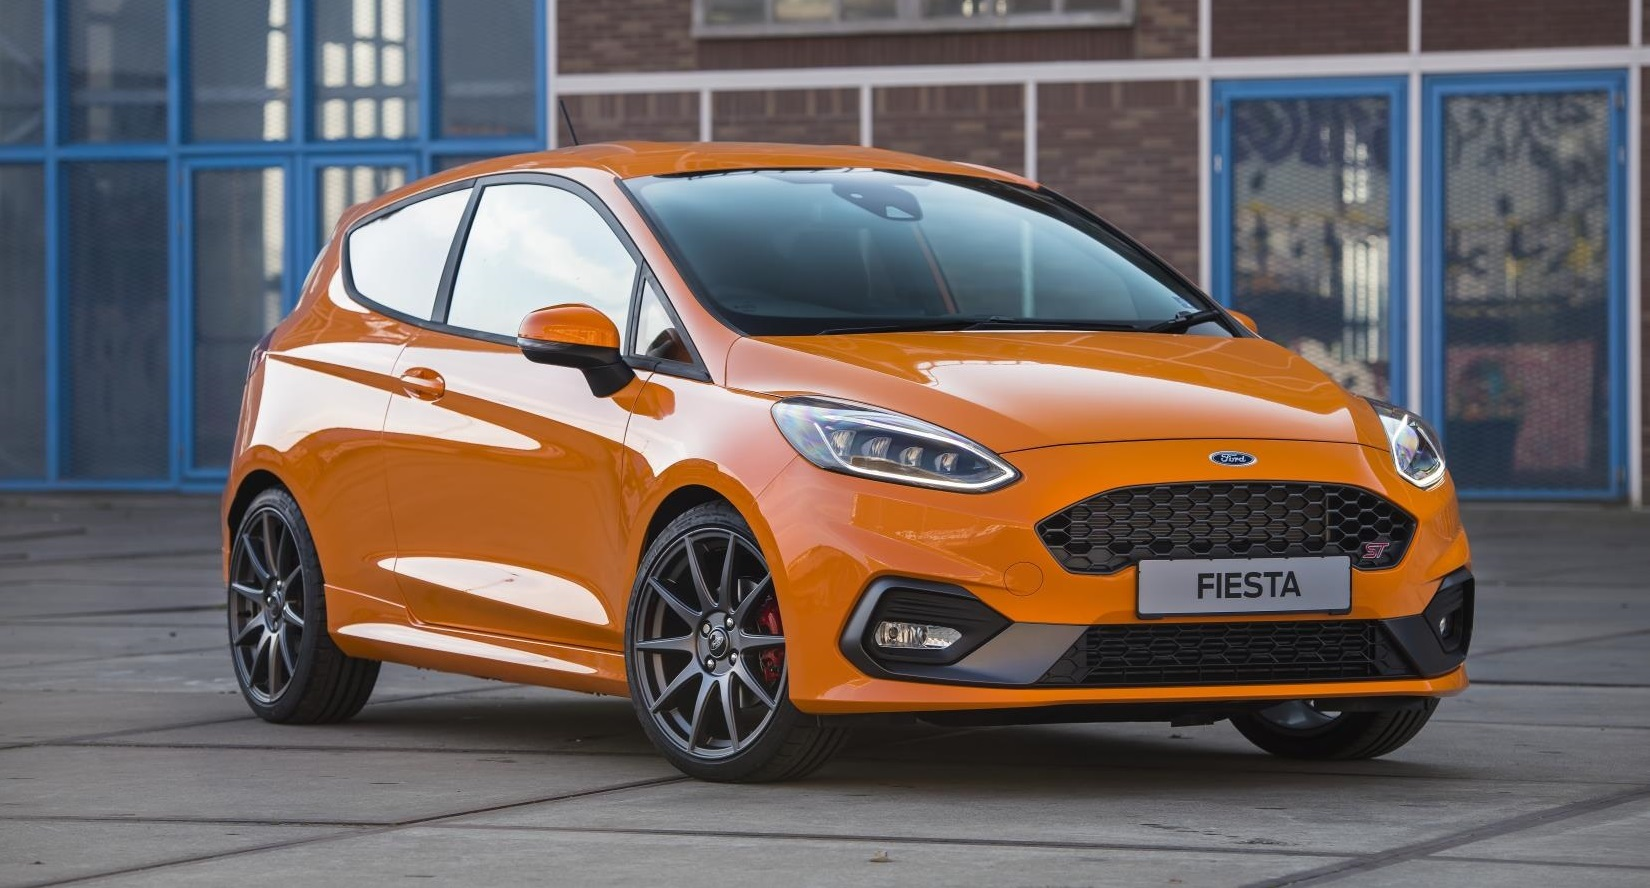 2020 Fiesta St Performance and New Engine